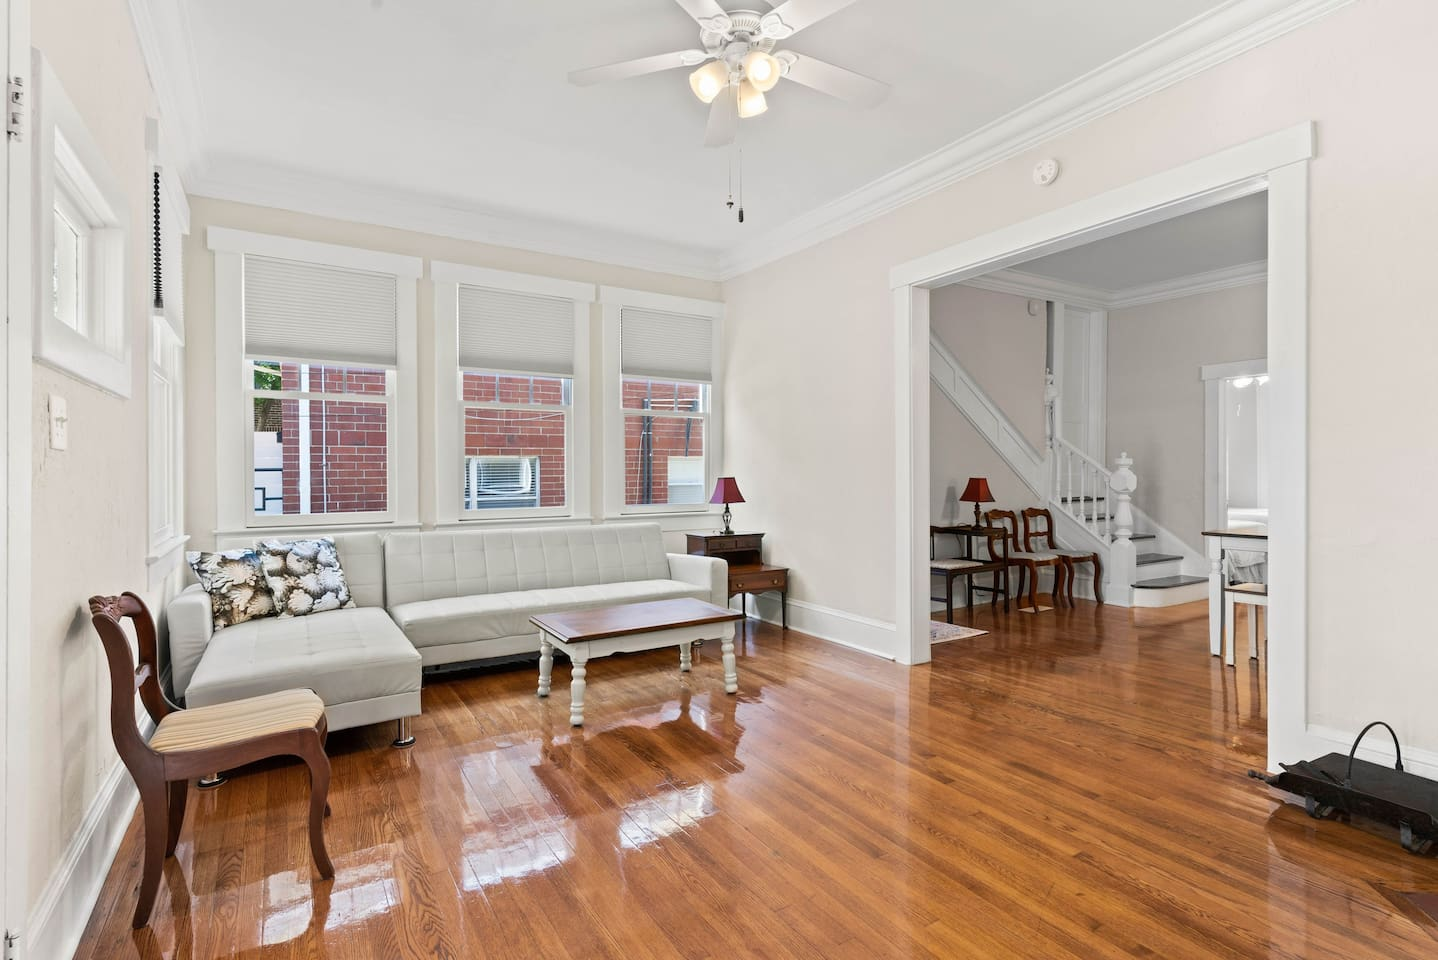 Refinished hardwood floors, high ceilings, crown molding, original craftsman details, and antique furniture throughout